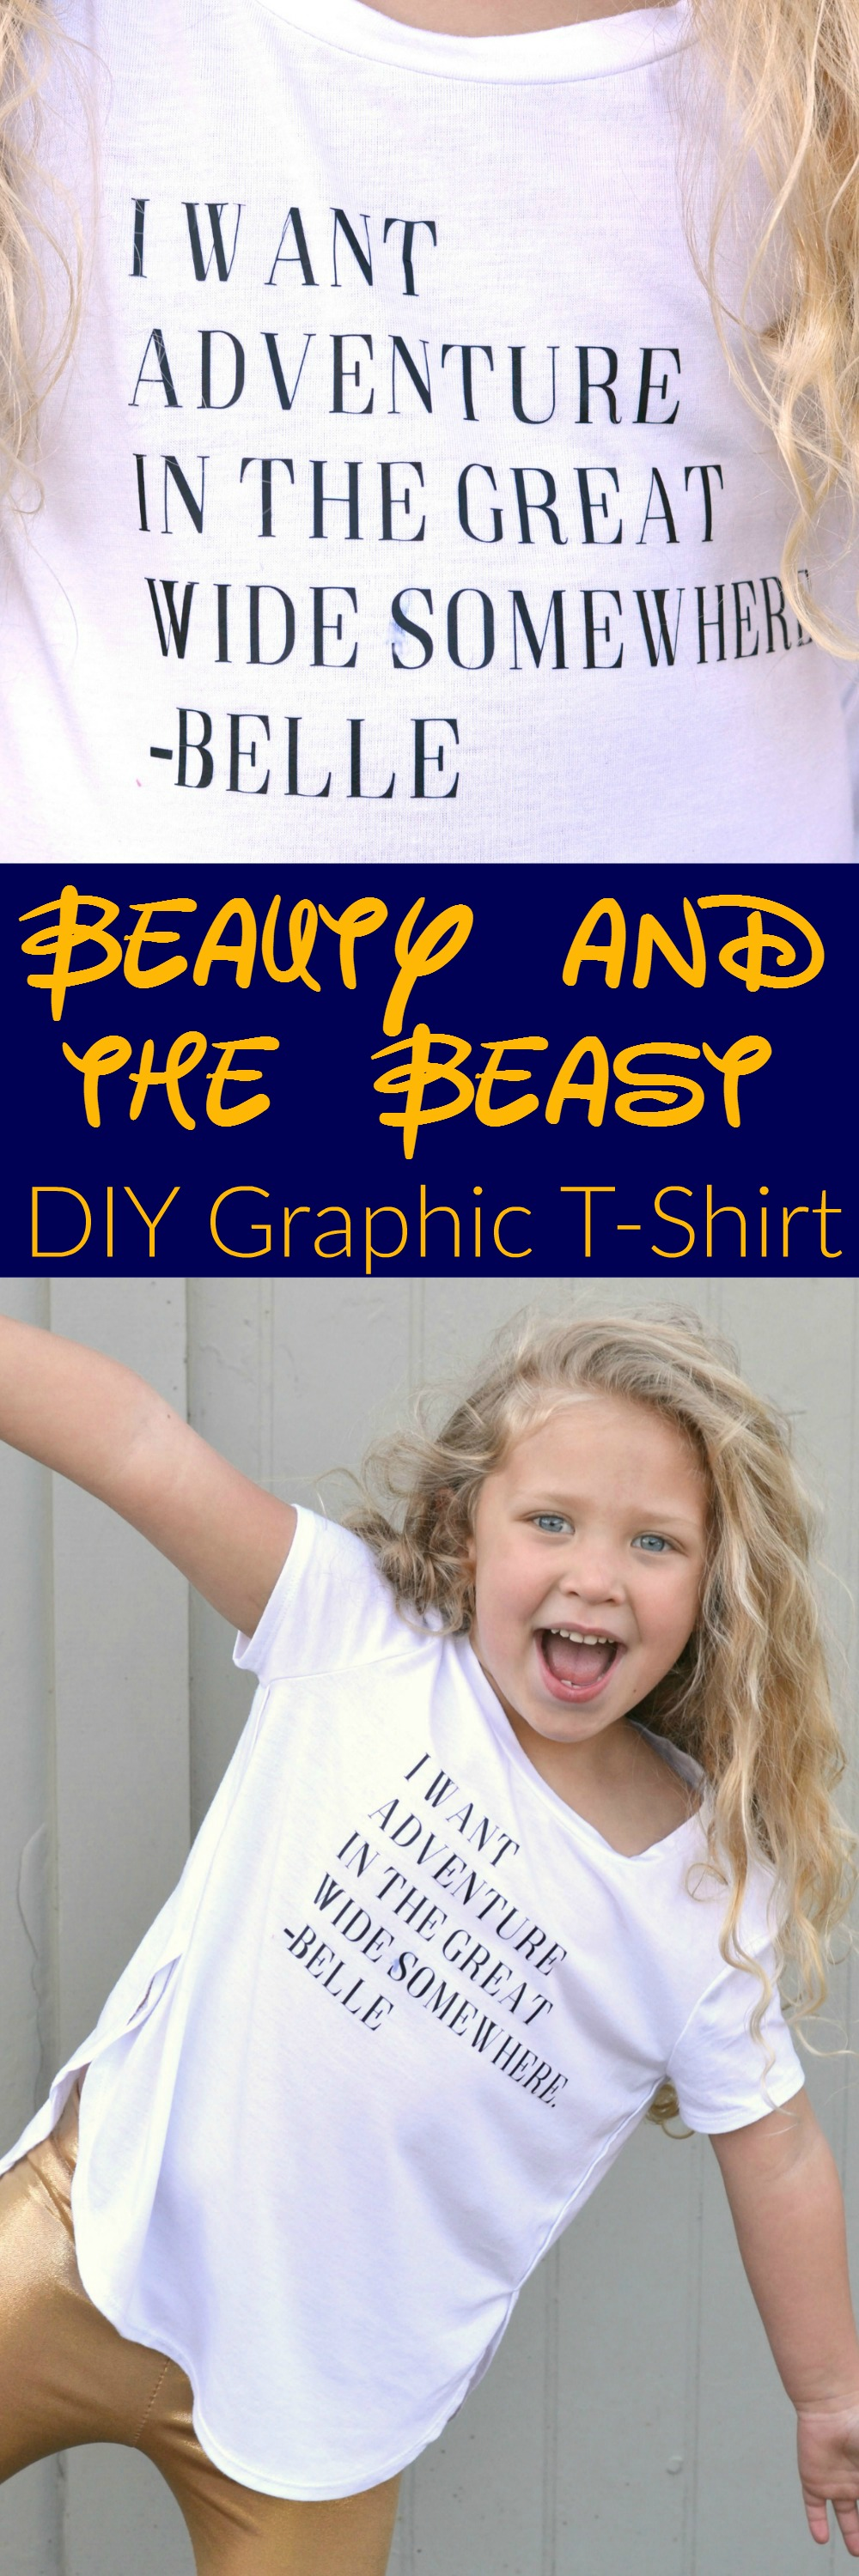 Disney Beauty and the Beast DIY Graphic T-shirt